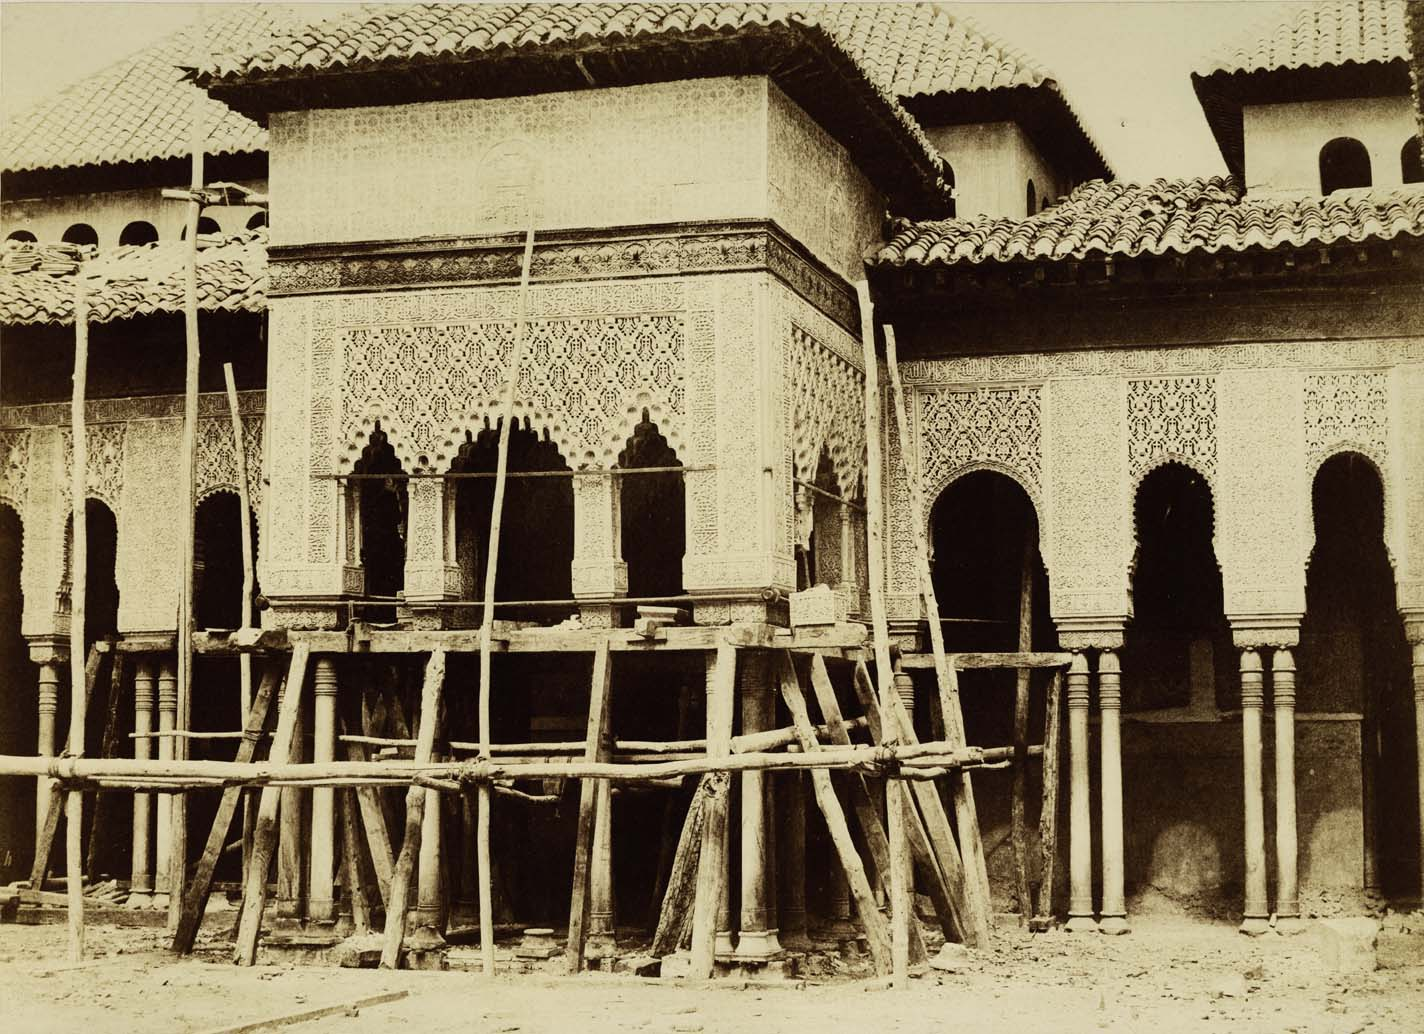 The Alhambra in the University of Navarra Museum